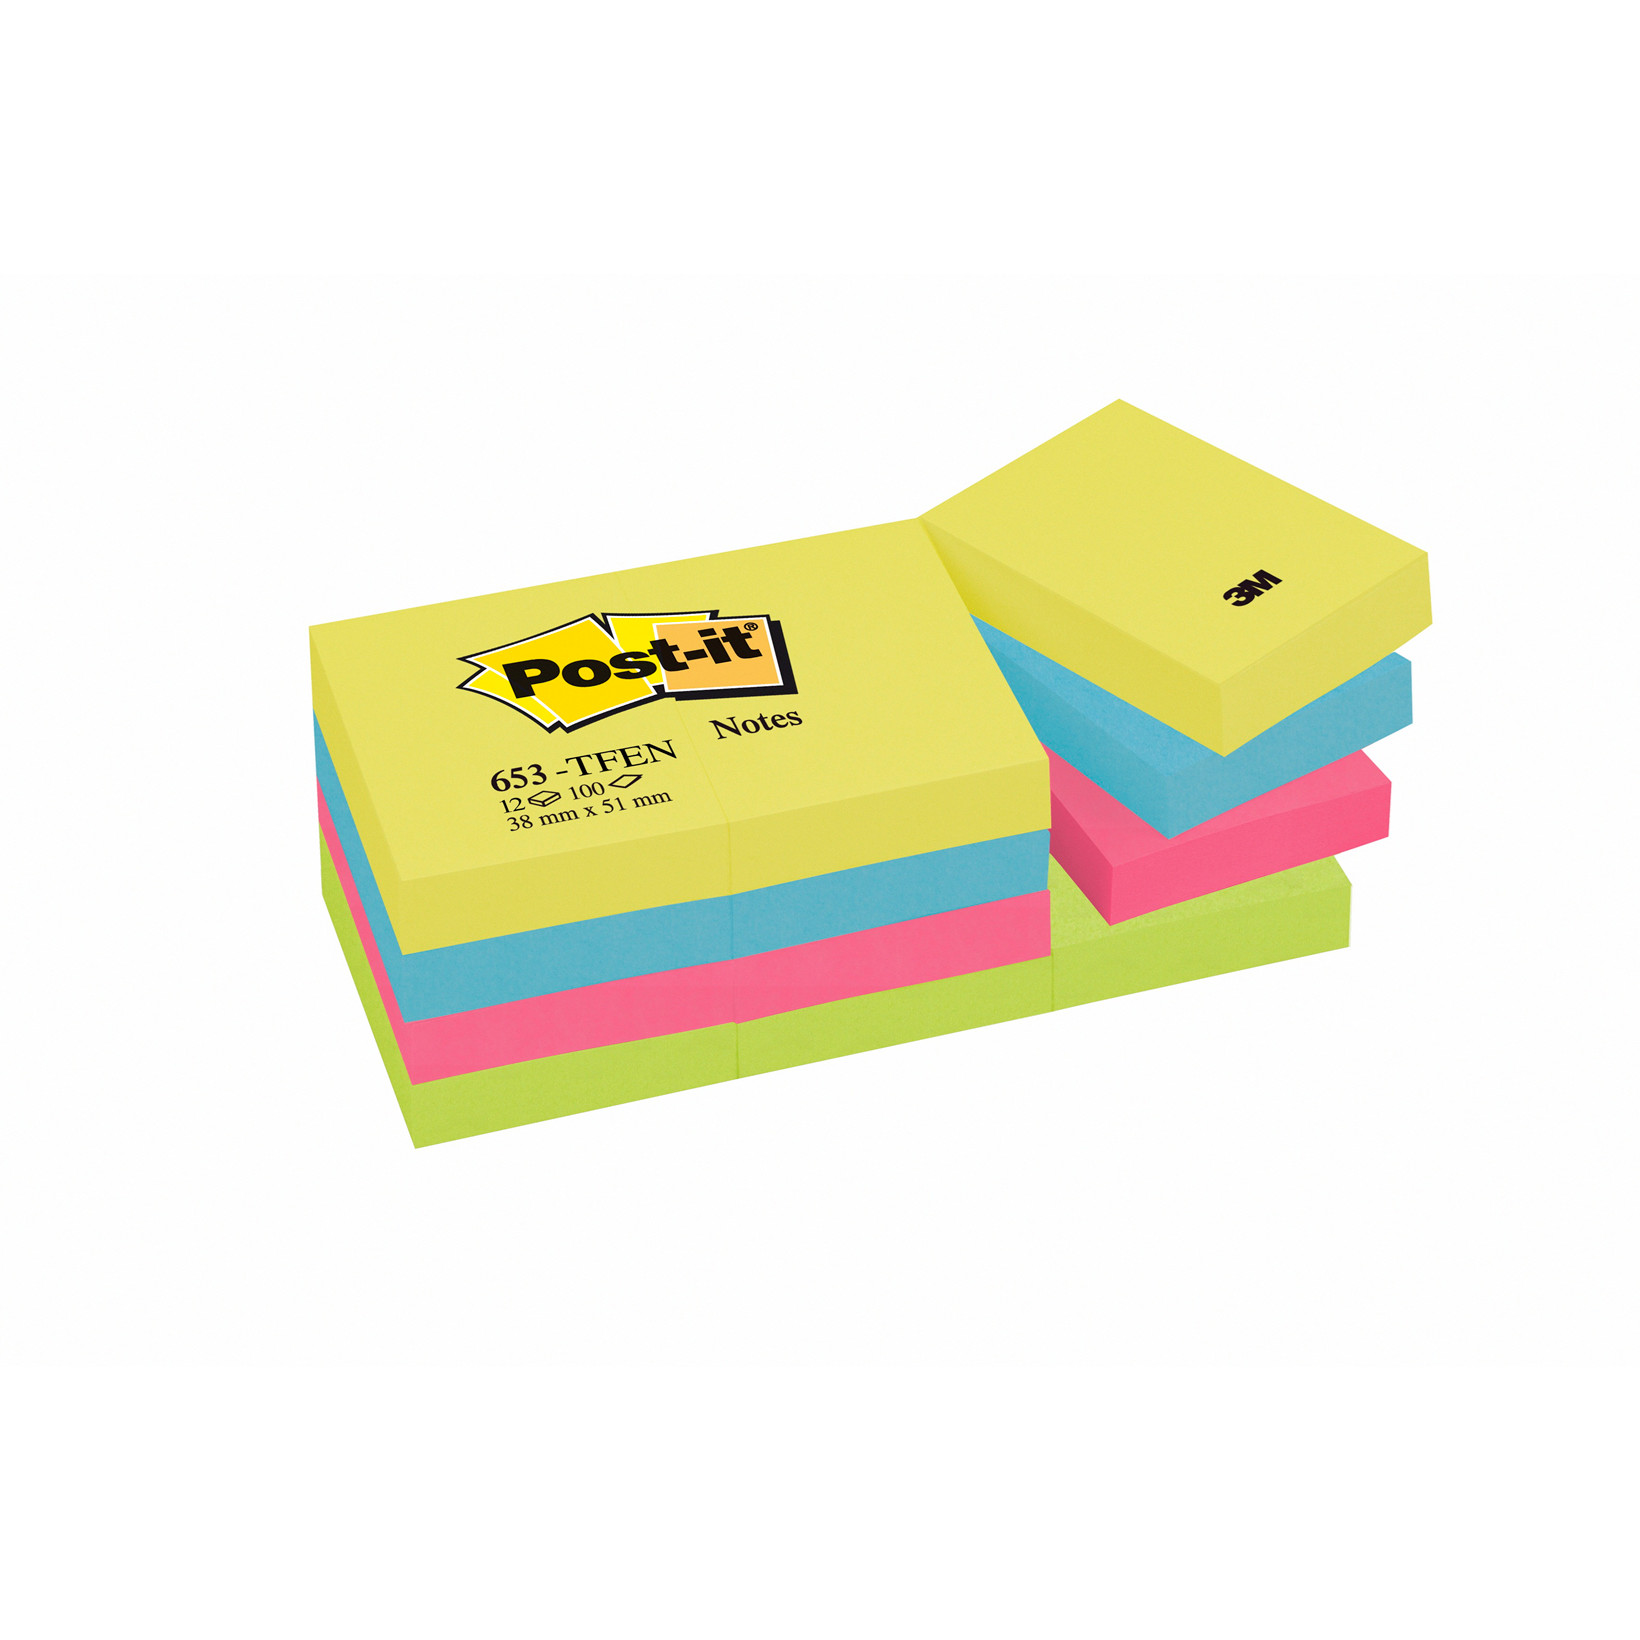 Post-it Notes - i 4 neon farver 38 x 51 mm 100 ark 653TFEN - 12 blokke